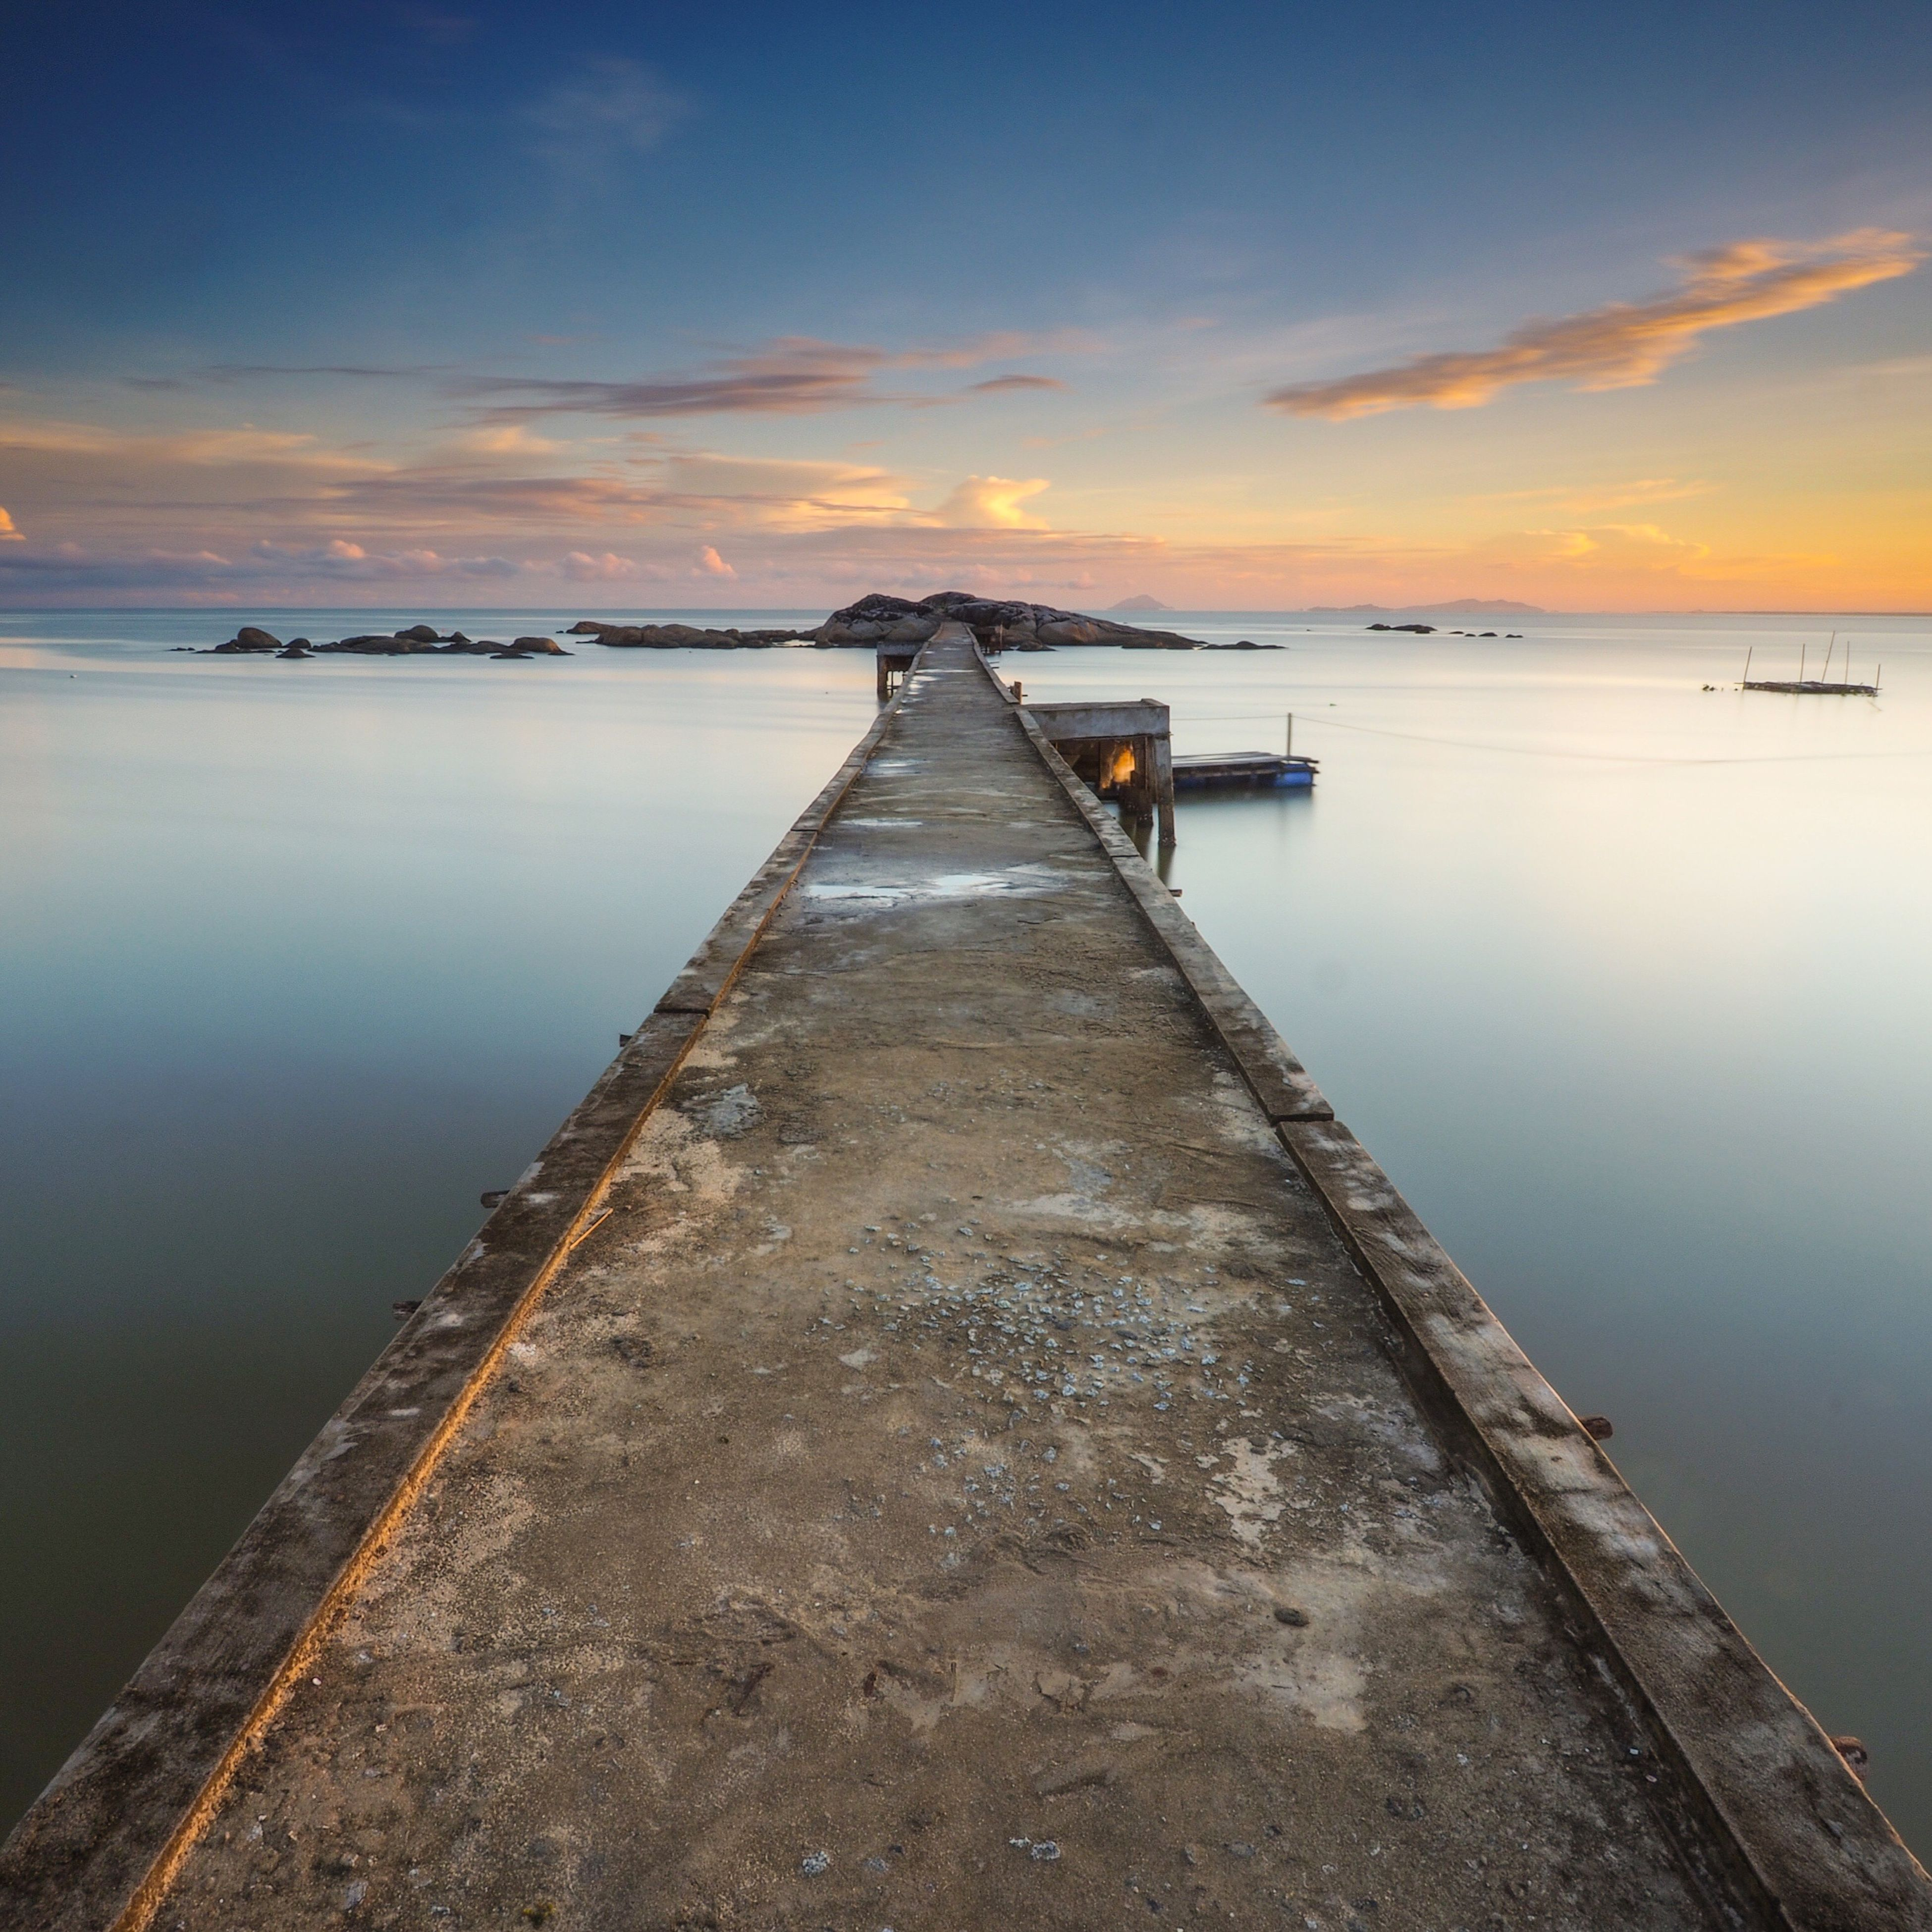 water, sunset, sea, sky, tranquility, tranquil scene, scenics, pier, beauty in nature, the way forward, nature, cloud - sky, idyllic, diminishing perspective, orange color, outdoors, no people, cloud, non-urban scene, cloudy, remote, ocean, vanishing point, weather, travel destinations